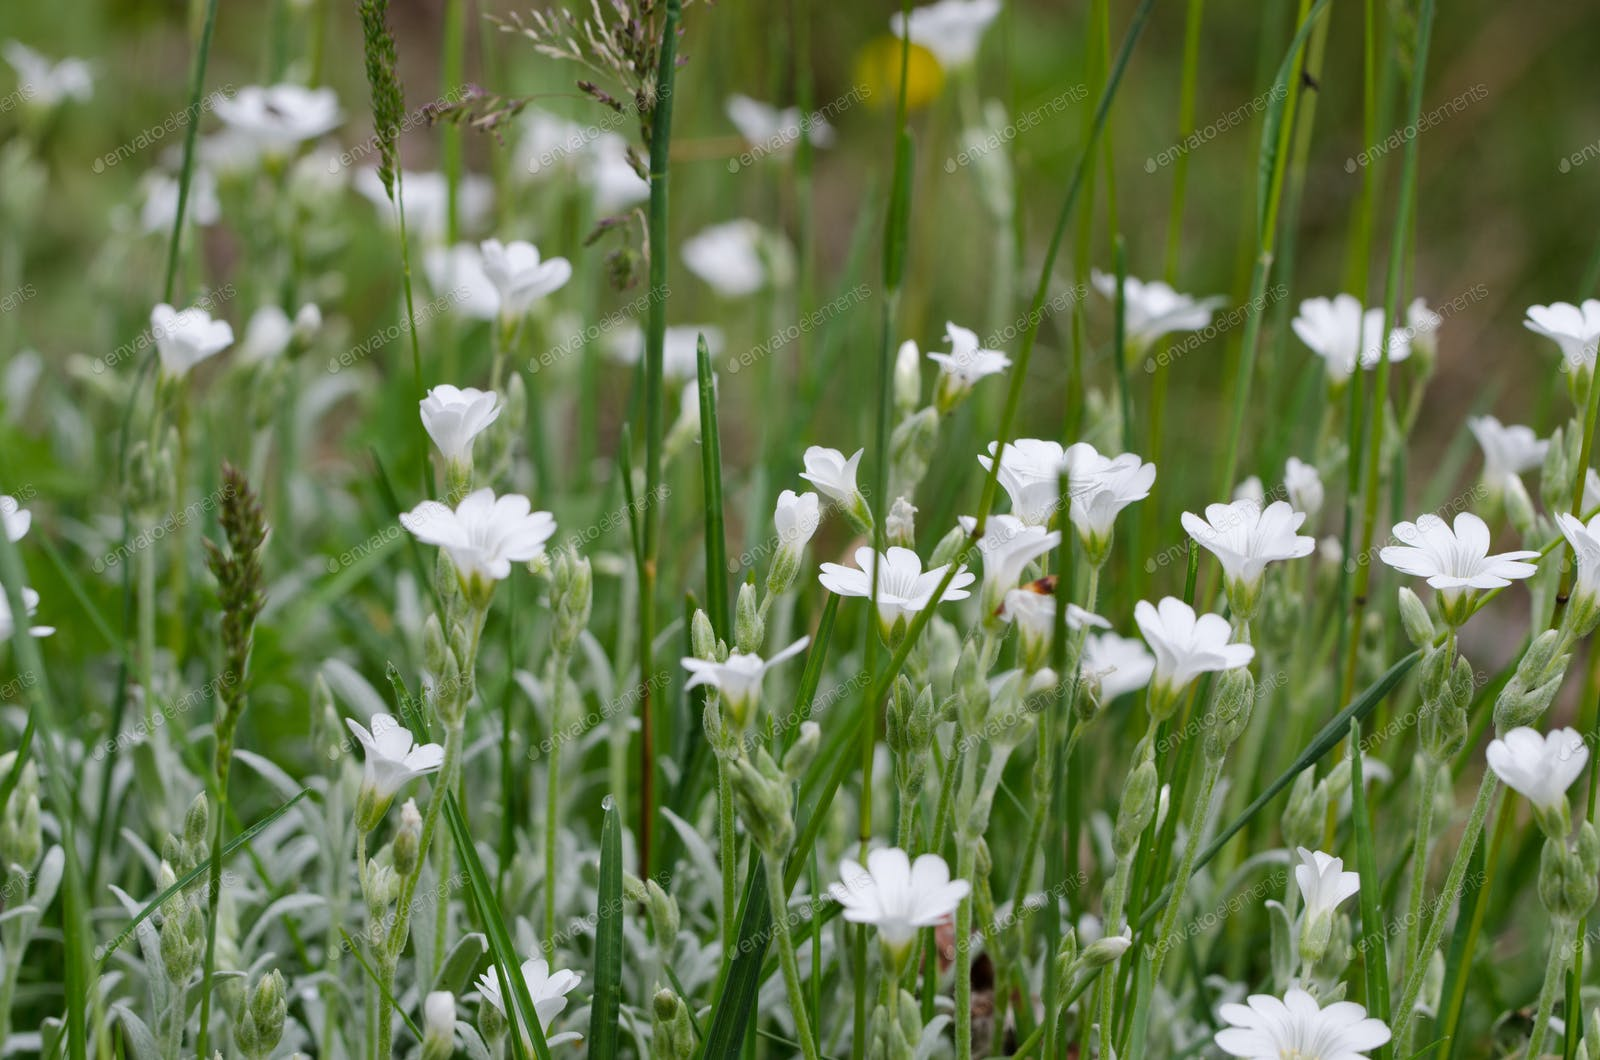 Tiny White Flowers In Grass Photo By Cmbankus On Envato Elements